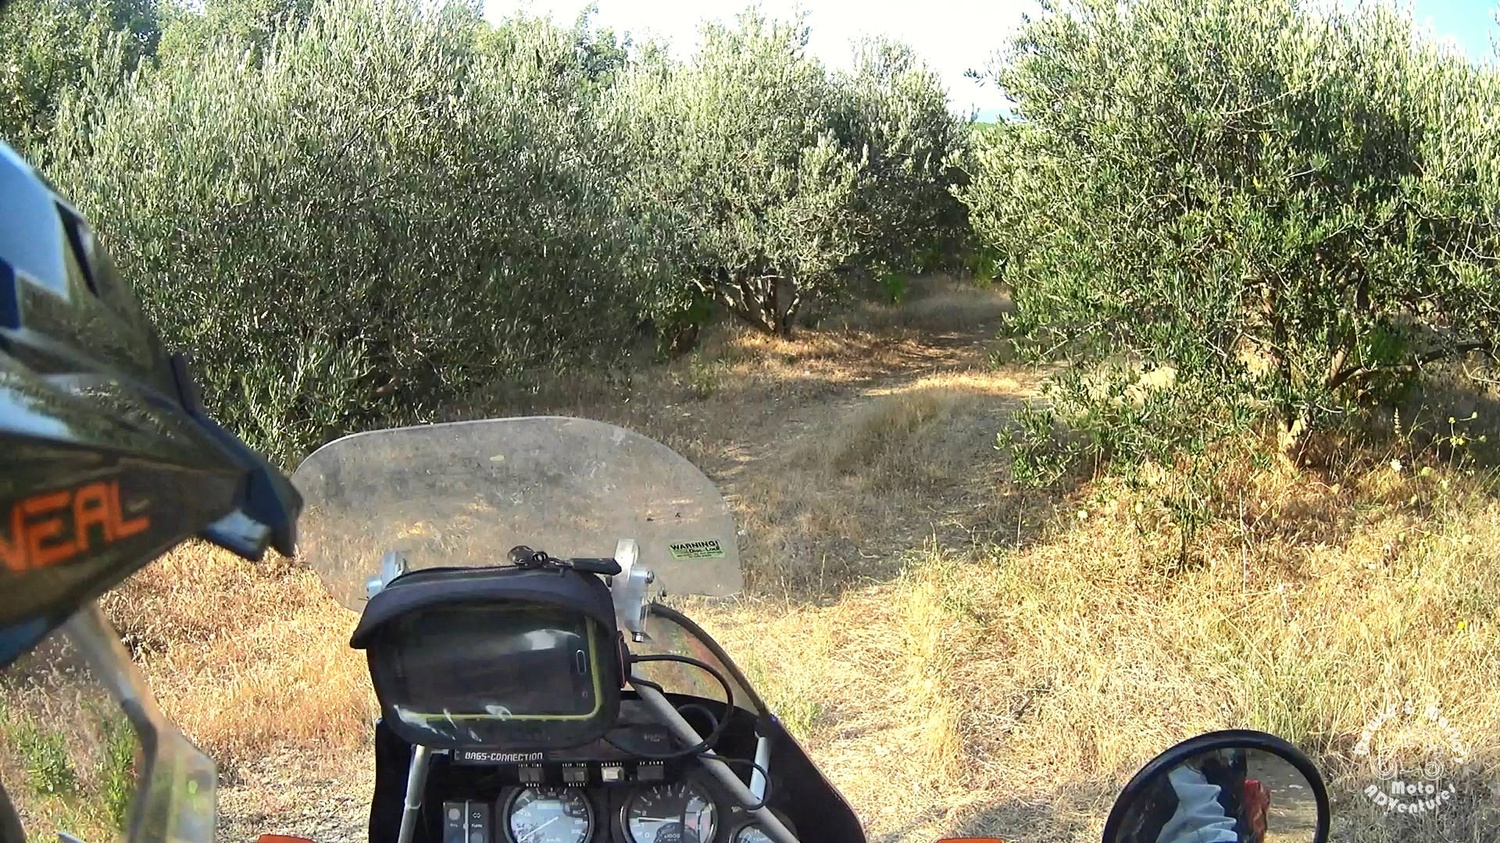 Riding the motorcycle in the olive grove